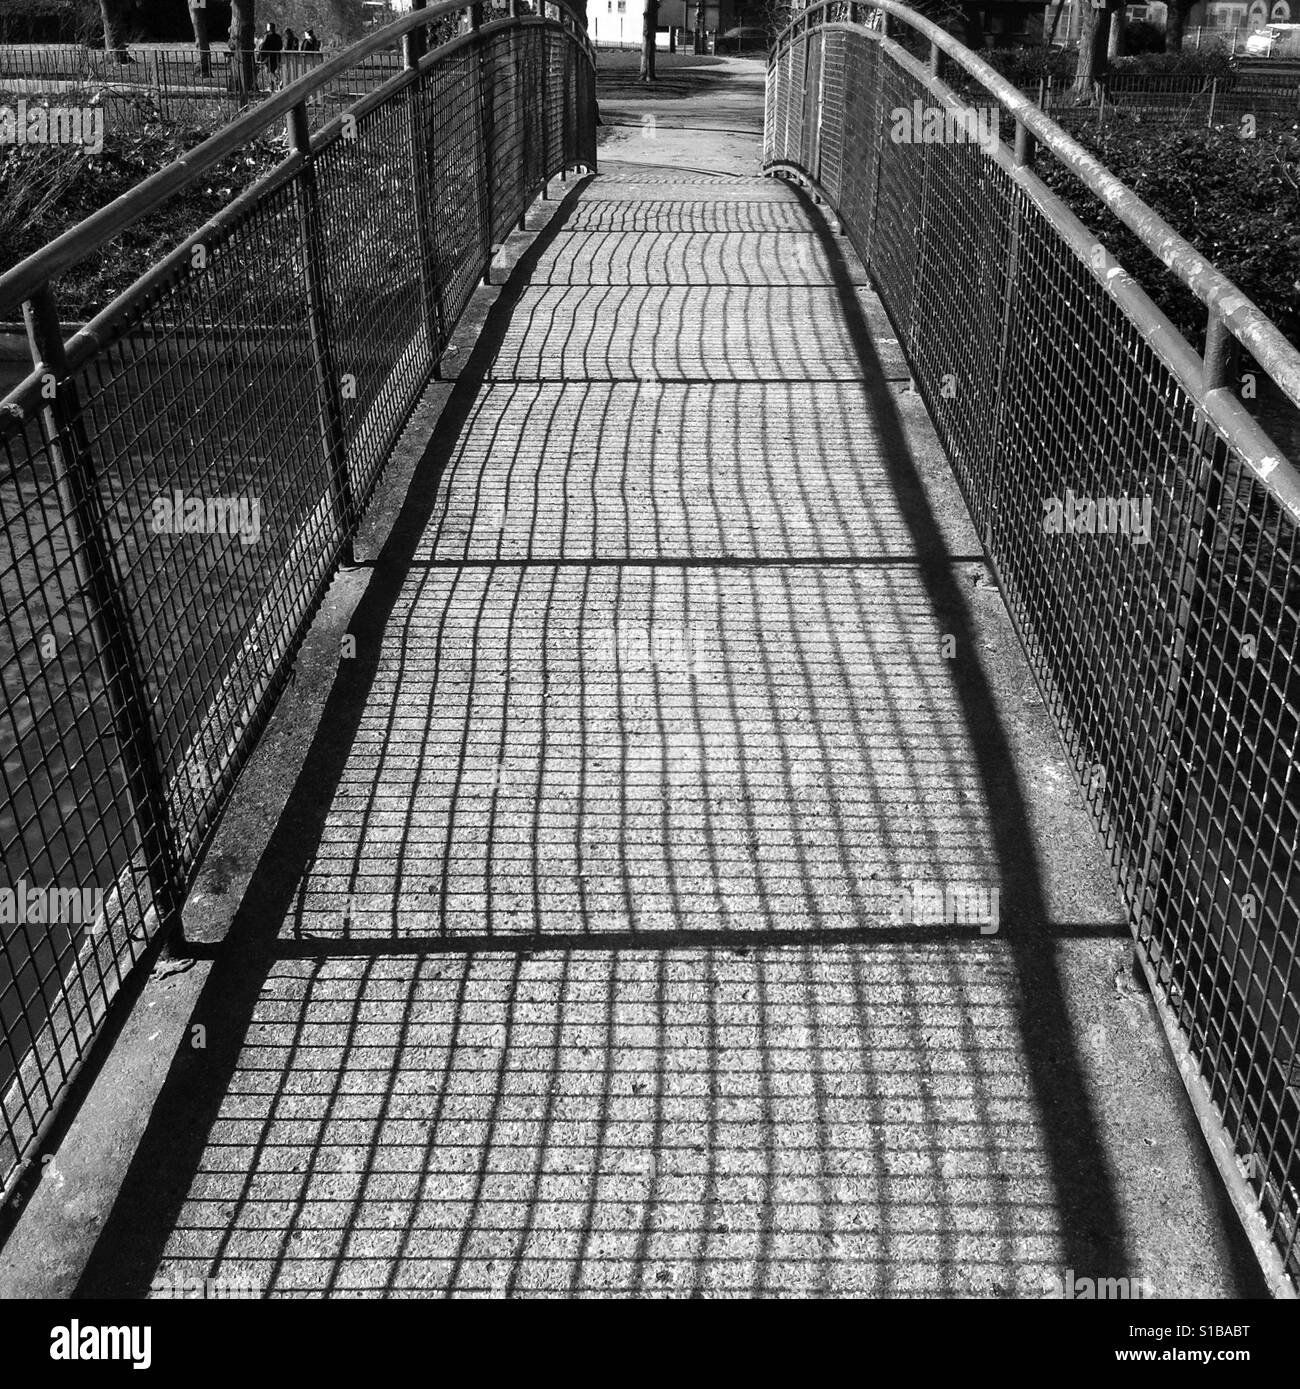 Side lite canal bridge, taken in black and white. - Stock Image